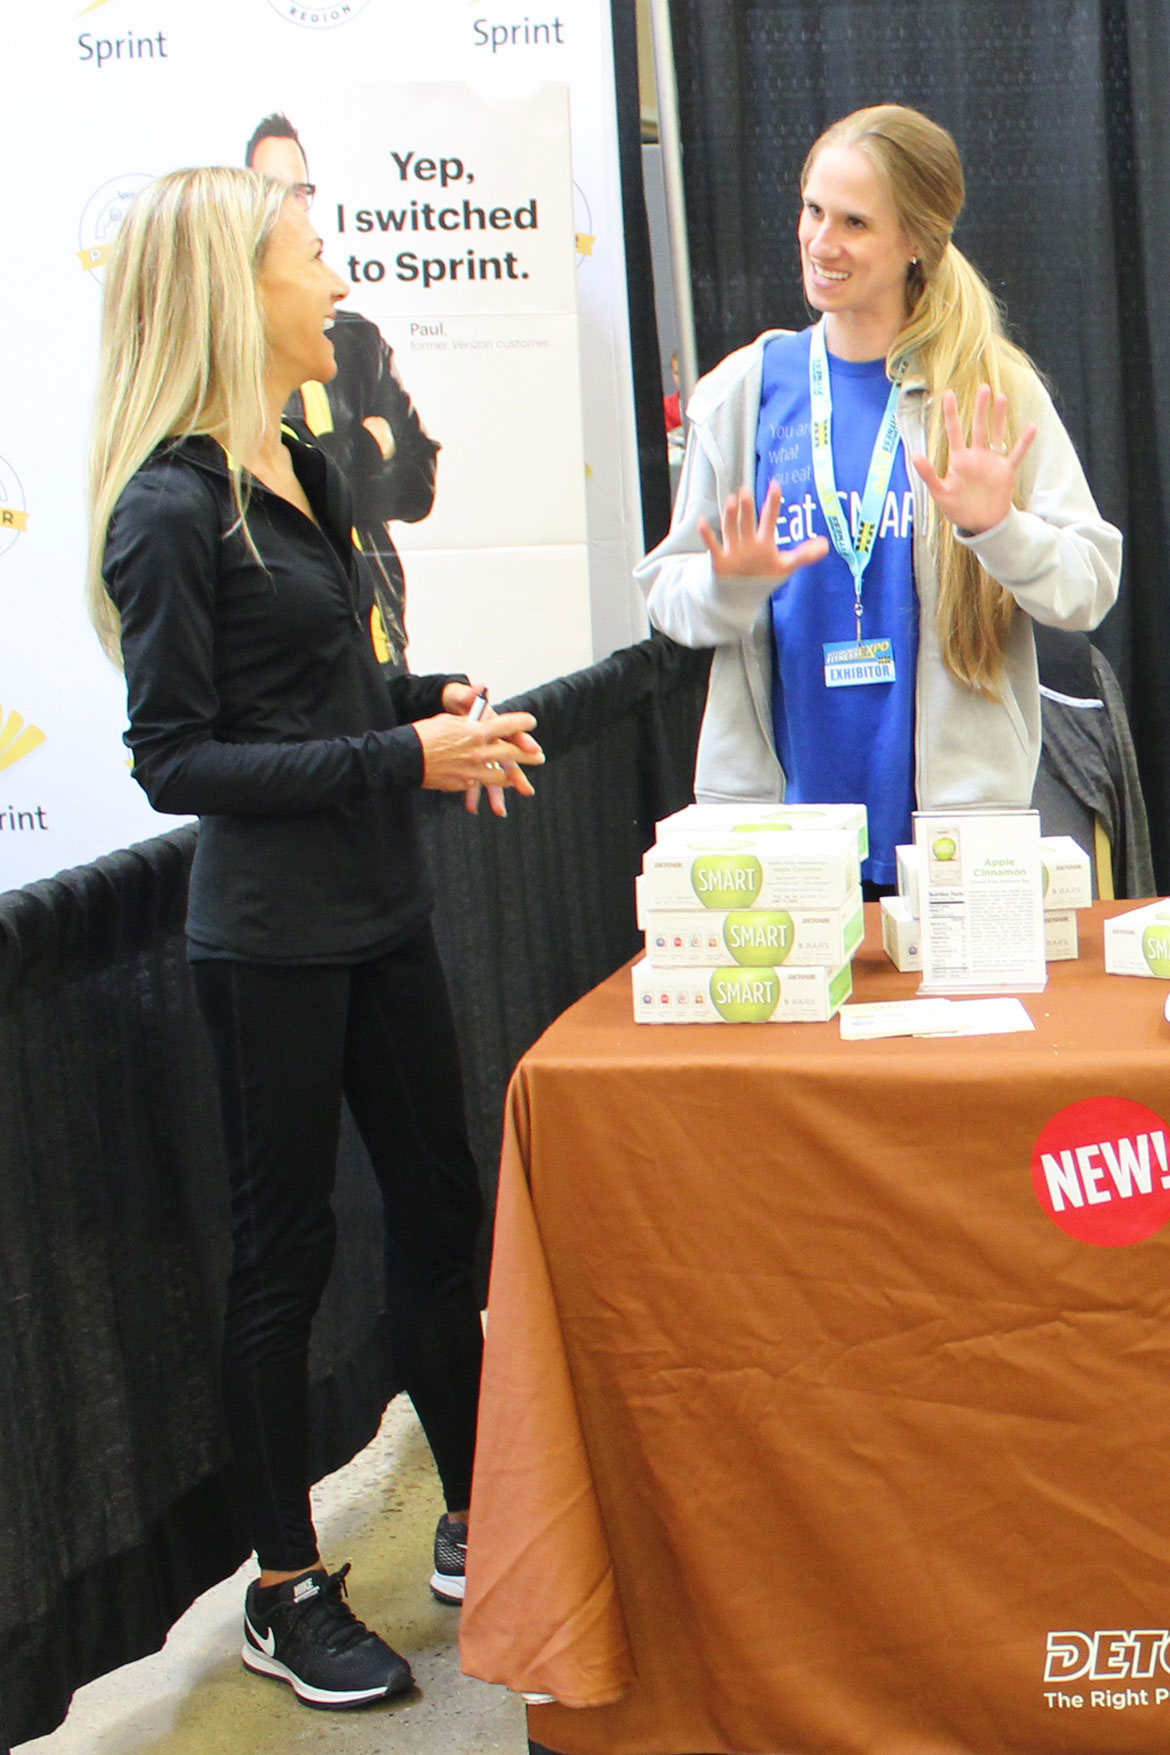 Fitness Experts at the Sprint and Detour SMART Bar Pavilions at a Health and Fitness Expo